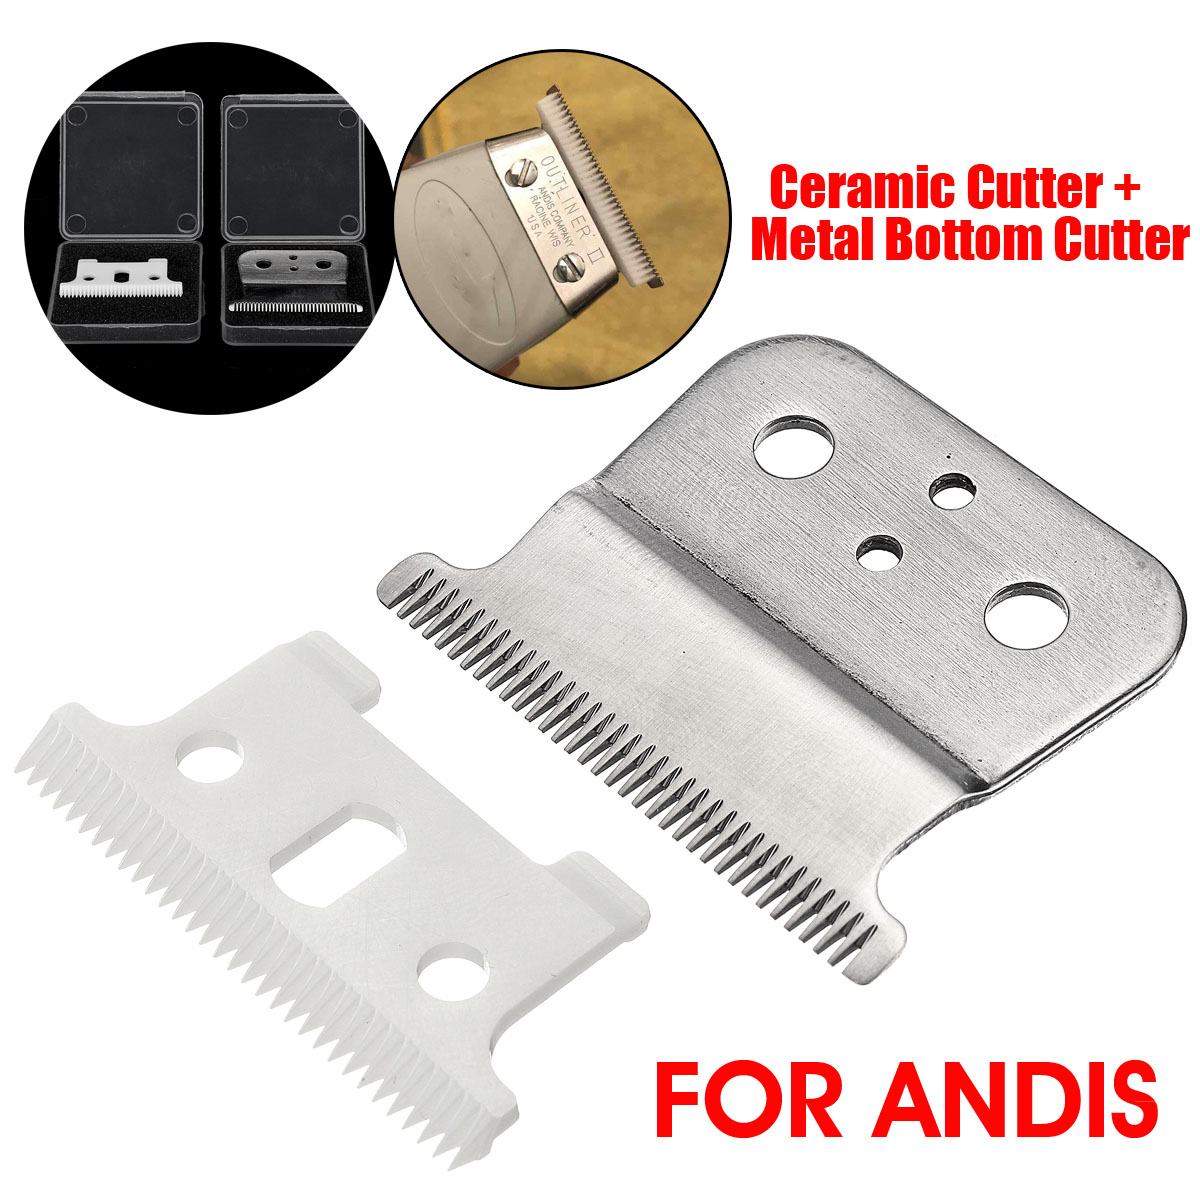 2pcs Strong Barber Ceramic Shop Cutter + Metal Bottom Cutter For Andis Electric Hair Trimmer Cutting Machine Clipper Accessories